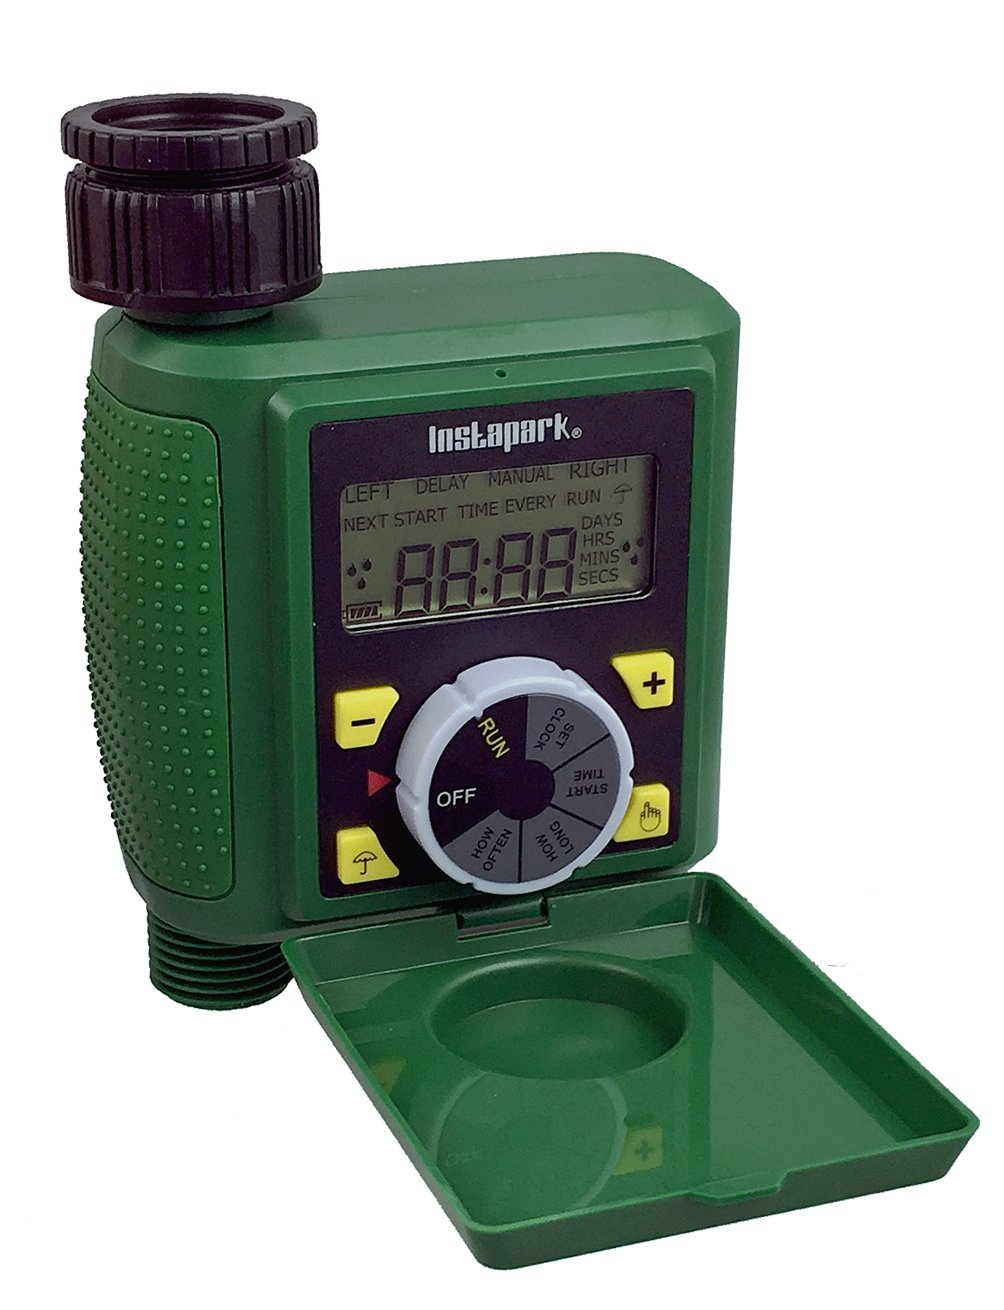 Instapark PWT-07 Outdoor Waterproof Digital Programmable Single Outlet Automatic On Off Water Faucet Hose Timer with Rain Delay and Manual Control by Instapark (Image #1)